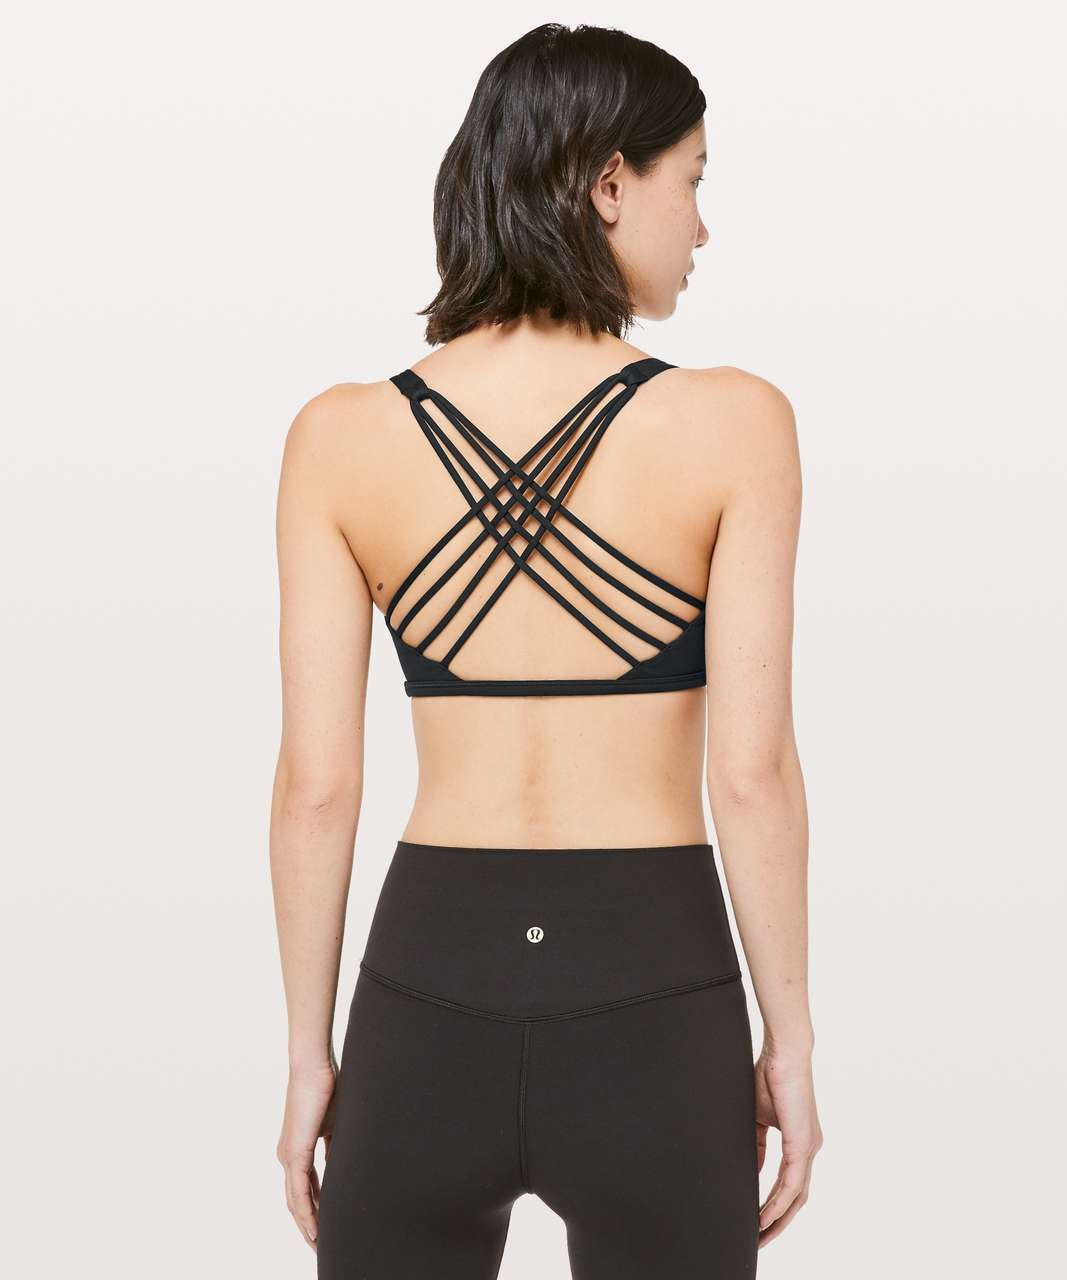 Lululemon Free To Be Bra (Wild) *Lunar New Year - Black